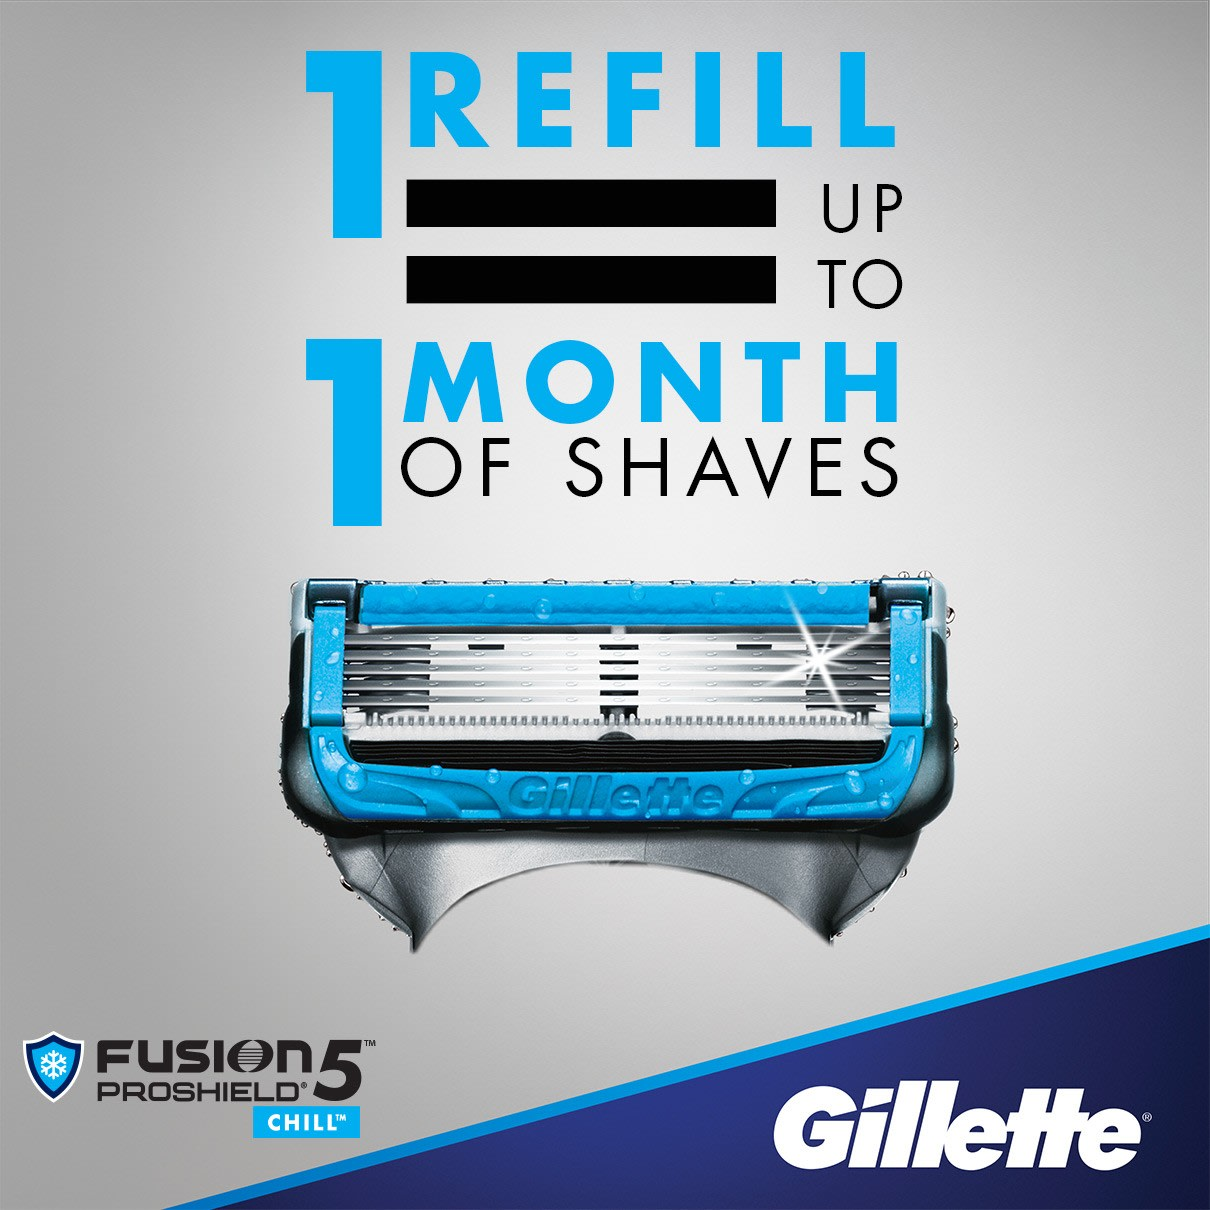 1 refill = up to 1 month of shaves